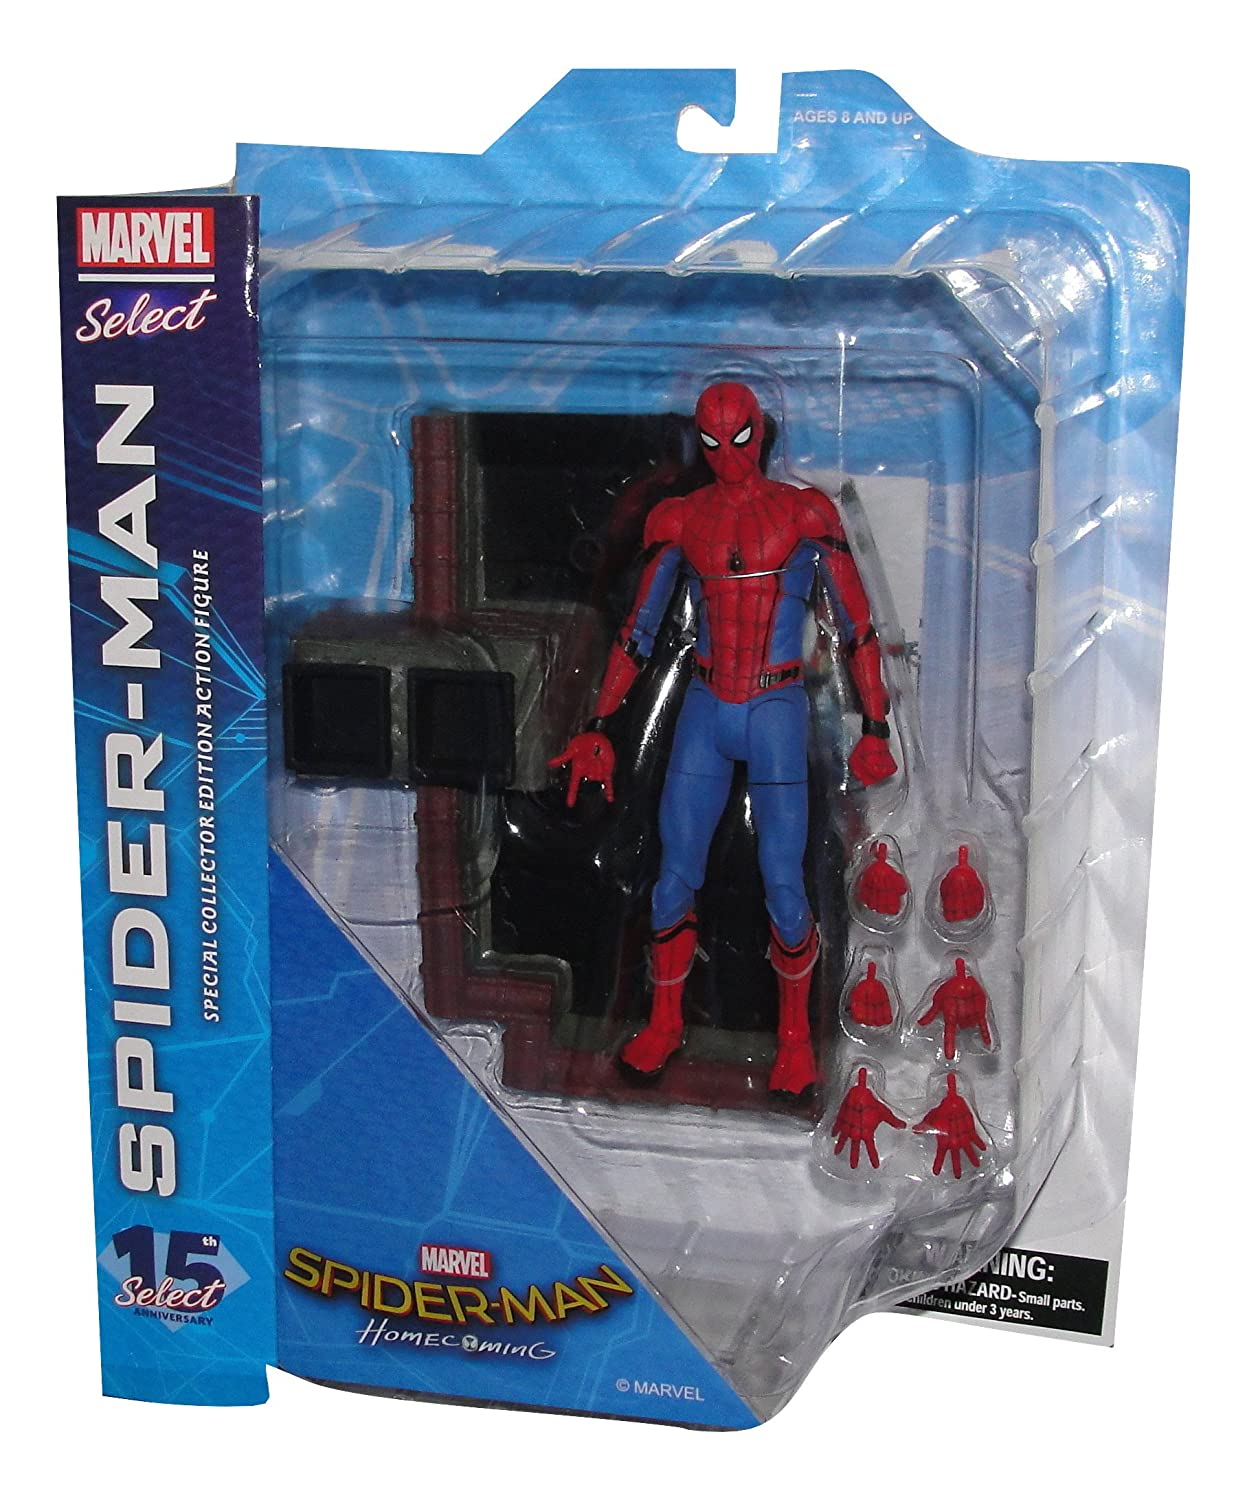 Diamond Select Toys Marvel Select Spider-Man Homecoming Films daction figure DCME7 FEB172613